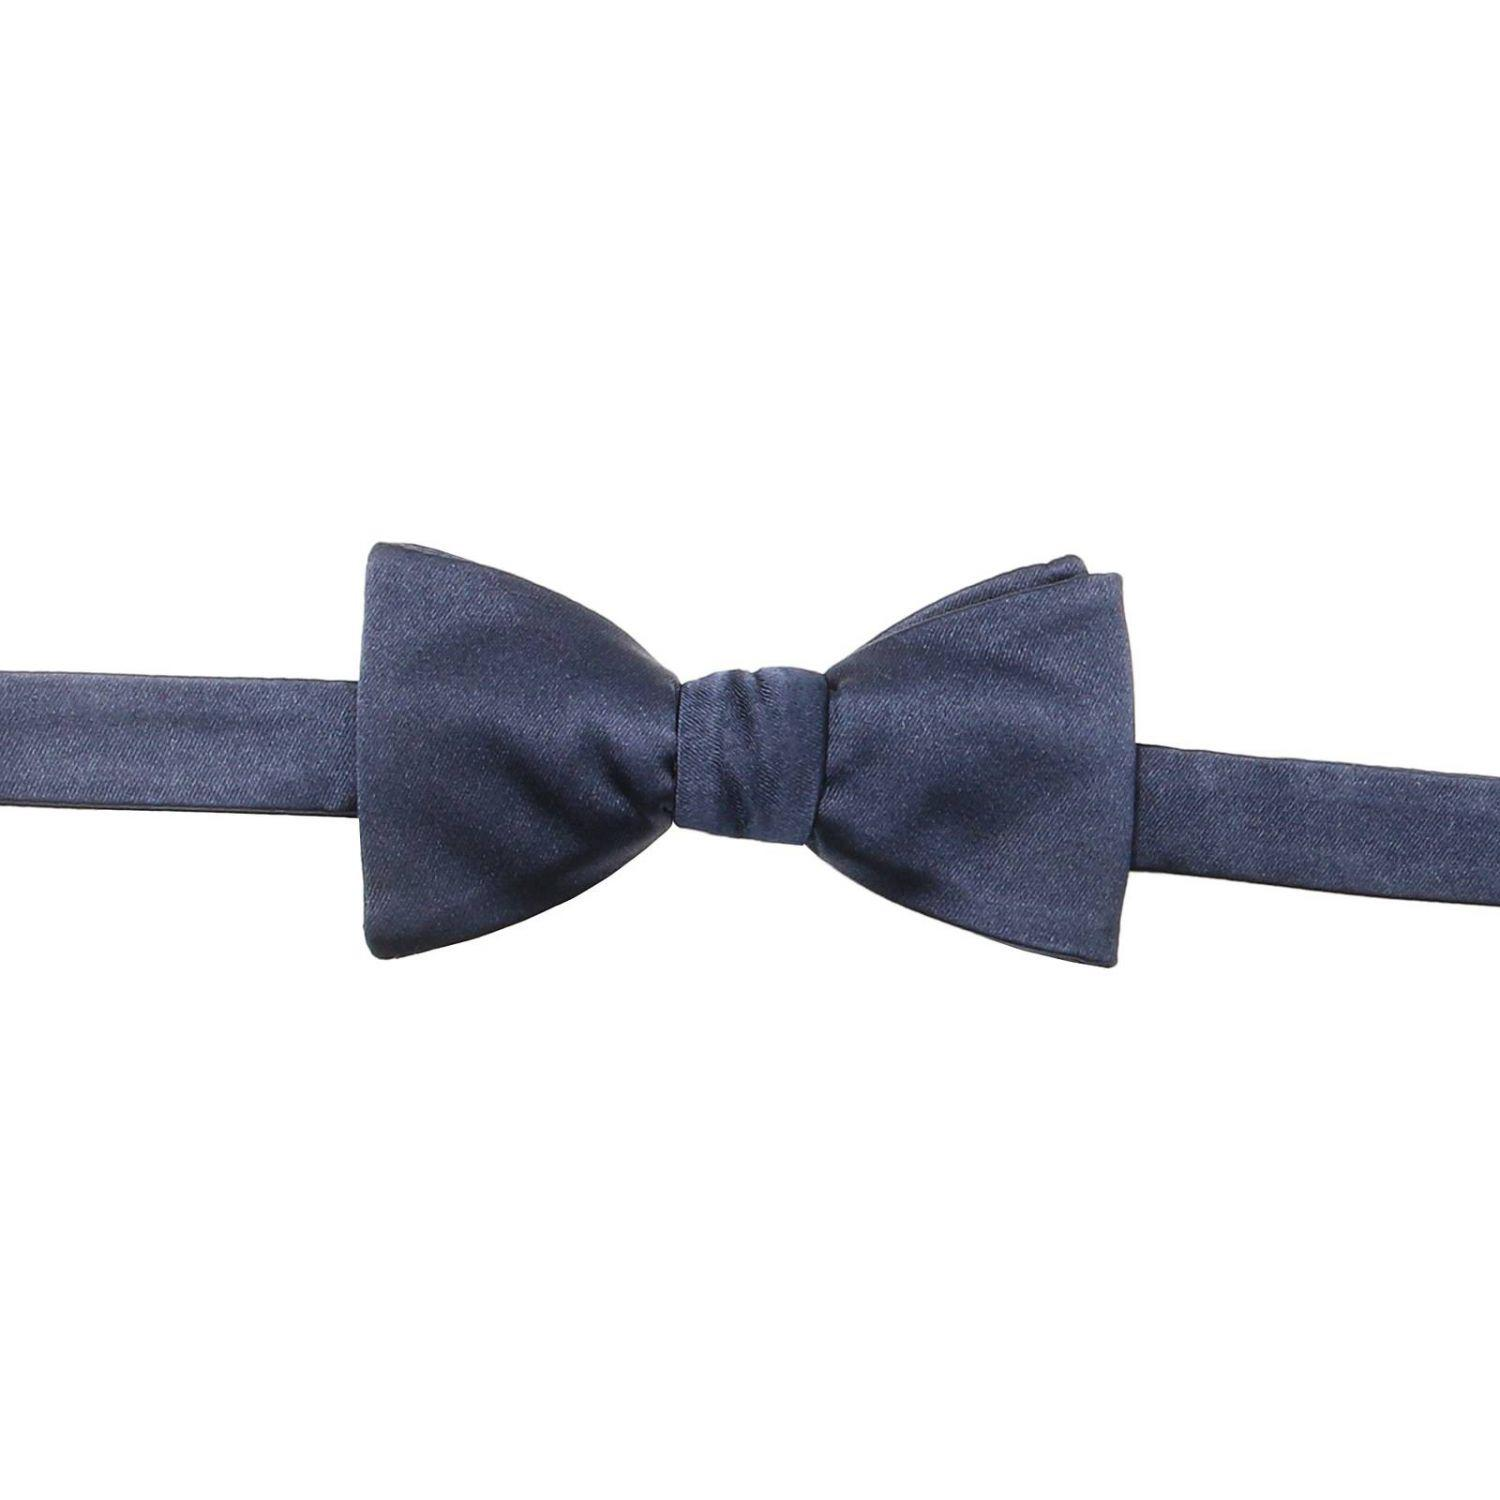 ACCESSORIES - Bow Ties Brian Dales cEjyM